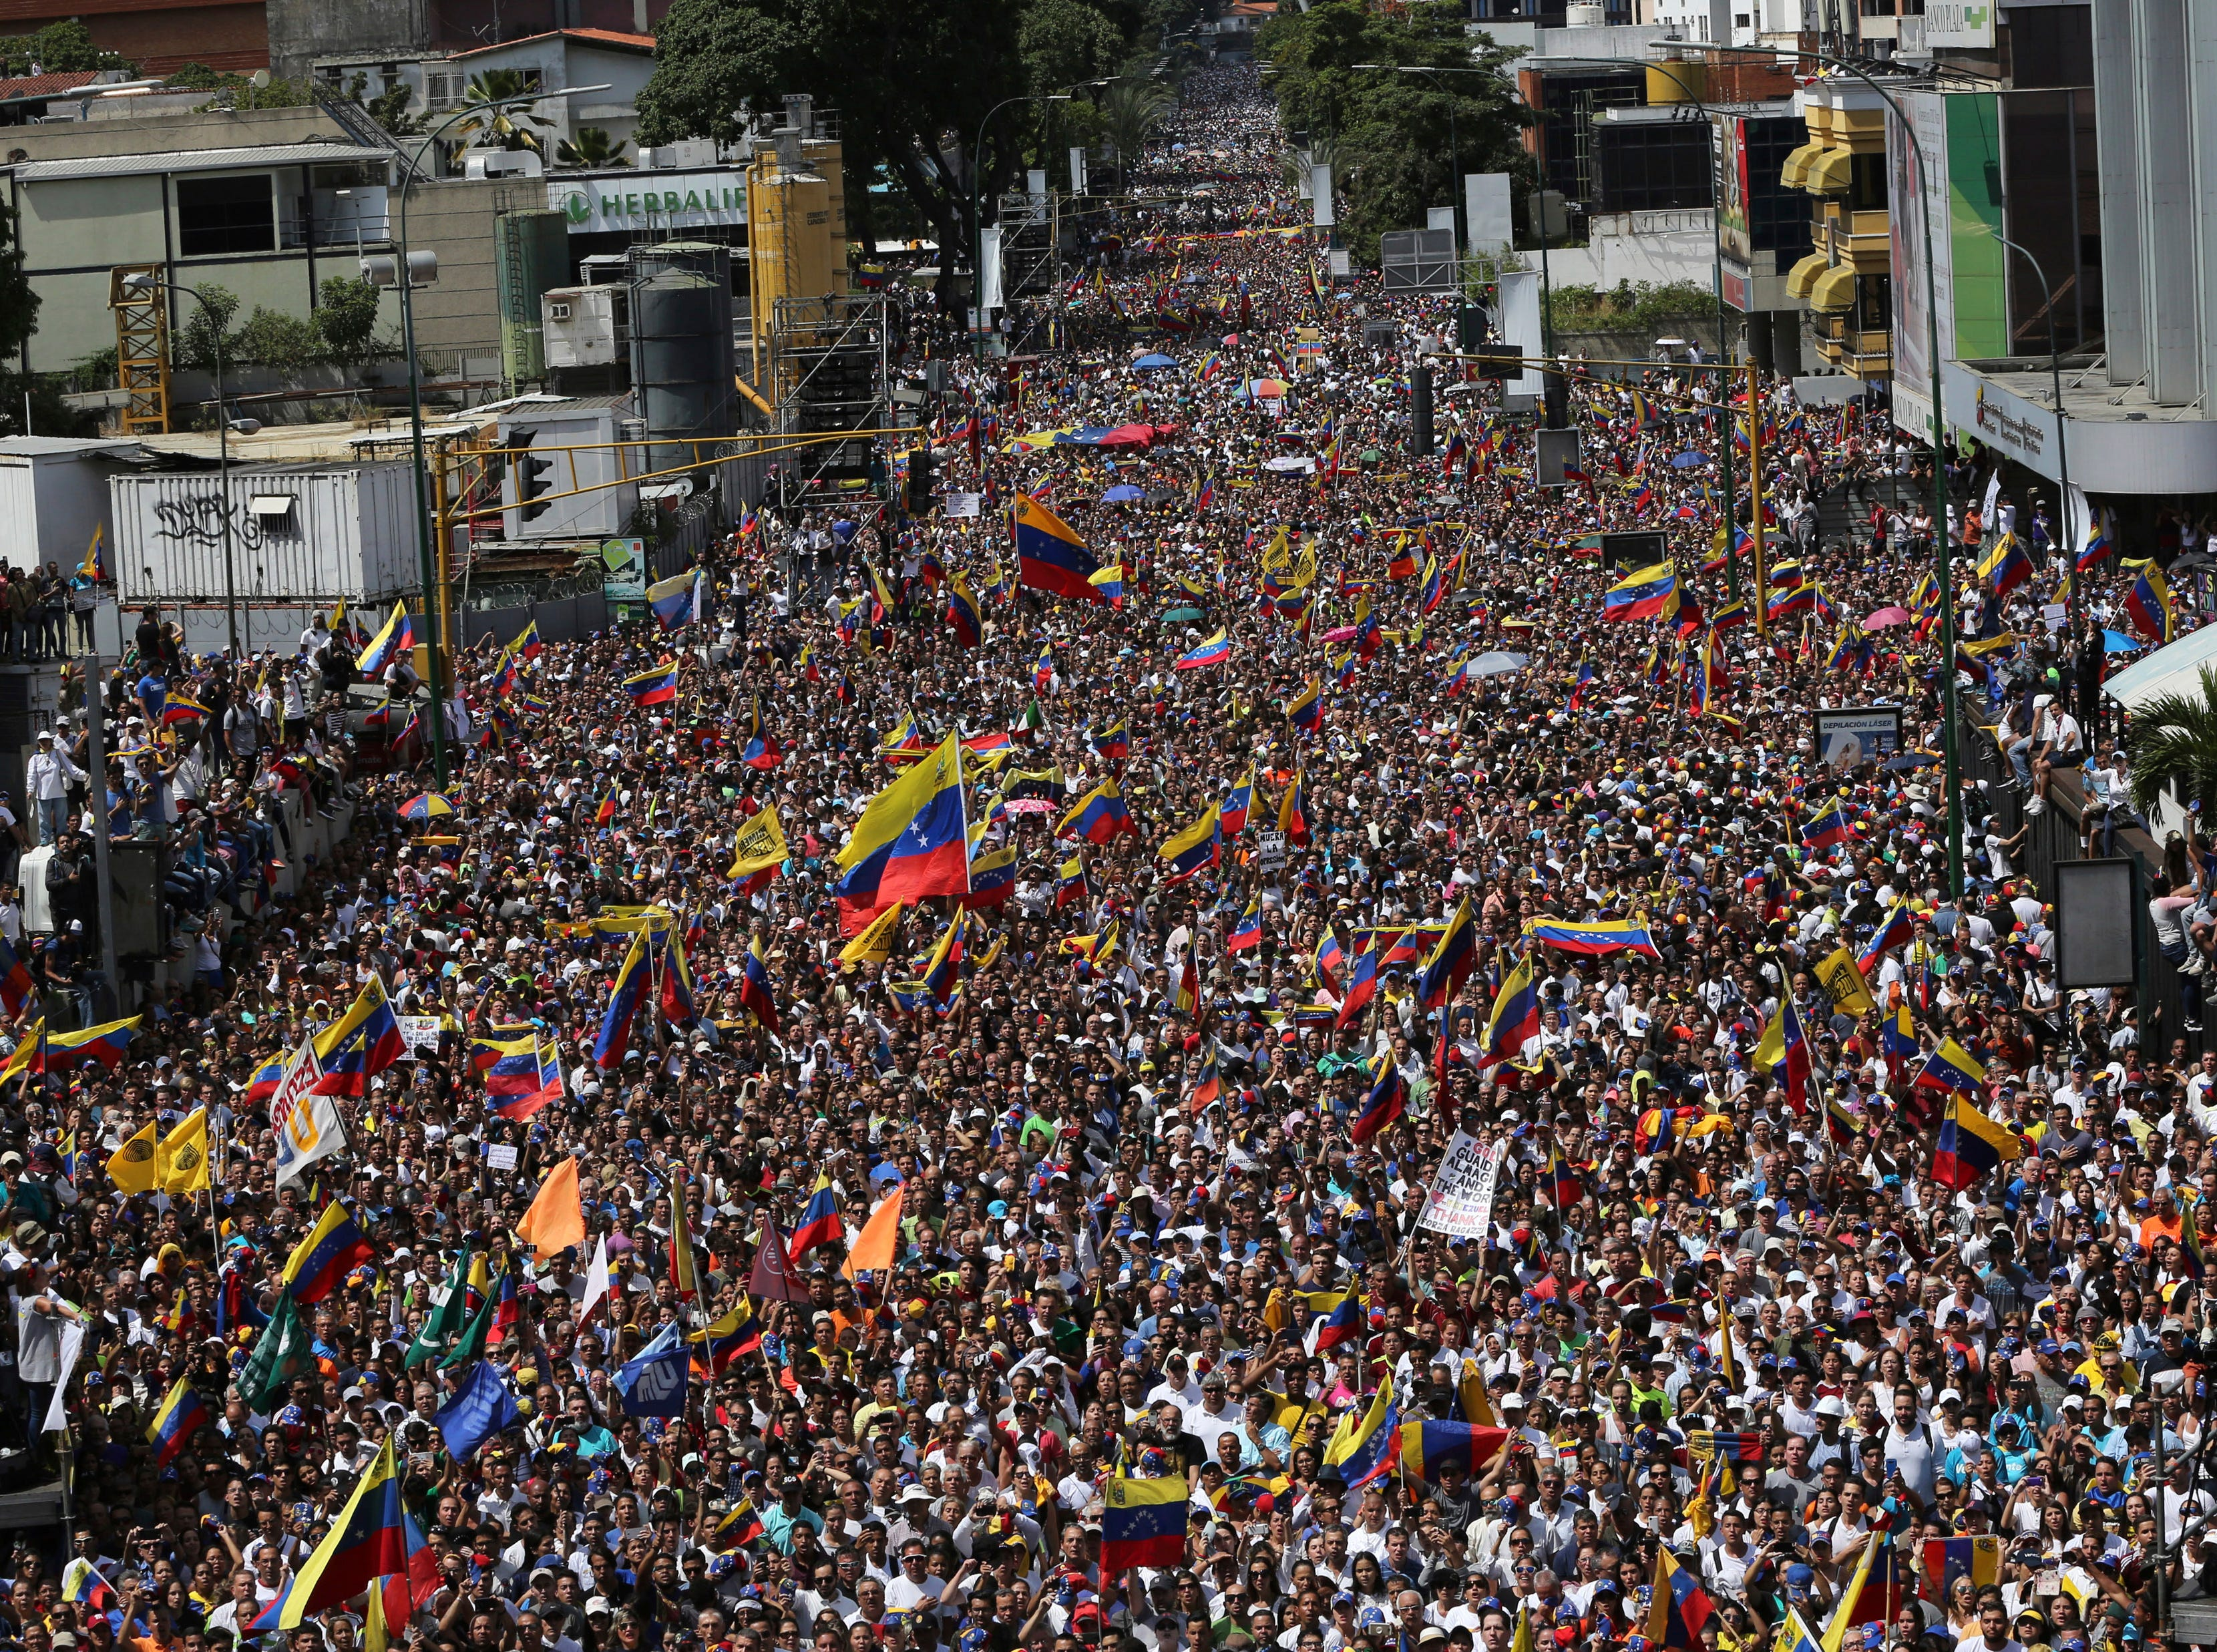 Anti-government protesters take part in a nationwide demonstration demanding the resignation of President Nicolas Maduro, in Caracas, Venezuela, Saturday, Feb. 2, 2019. Momentum is growing for Venezuela's opposition movement led by lawmaker Juan Guaido, who has called supporters back into the streets for nationwide protests Saturday, escalating pressure on Maduro to step down.